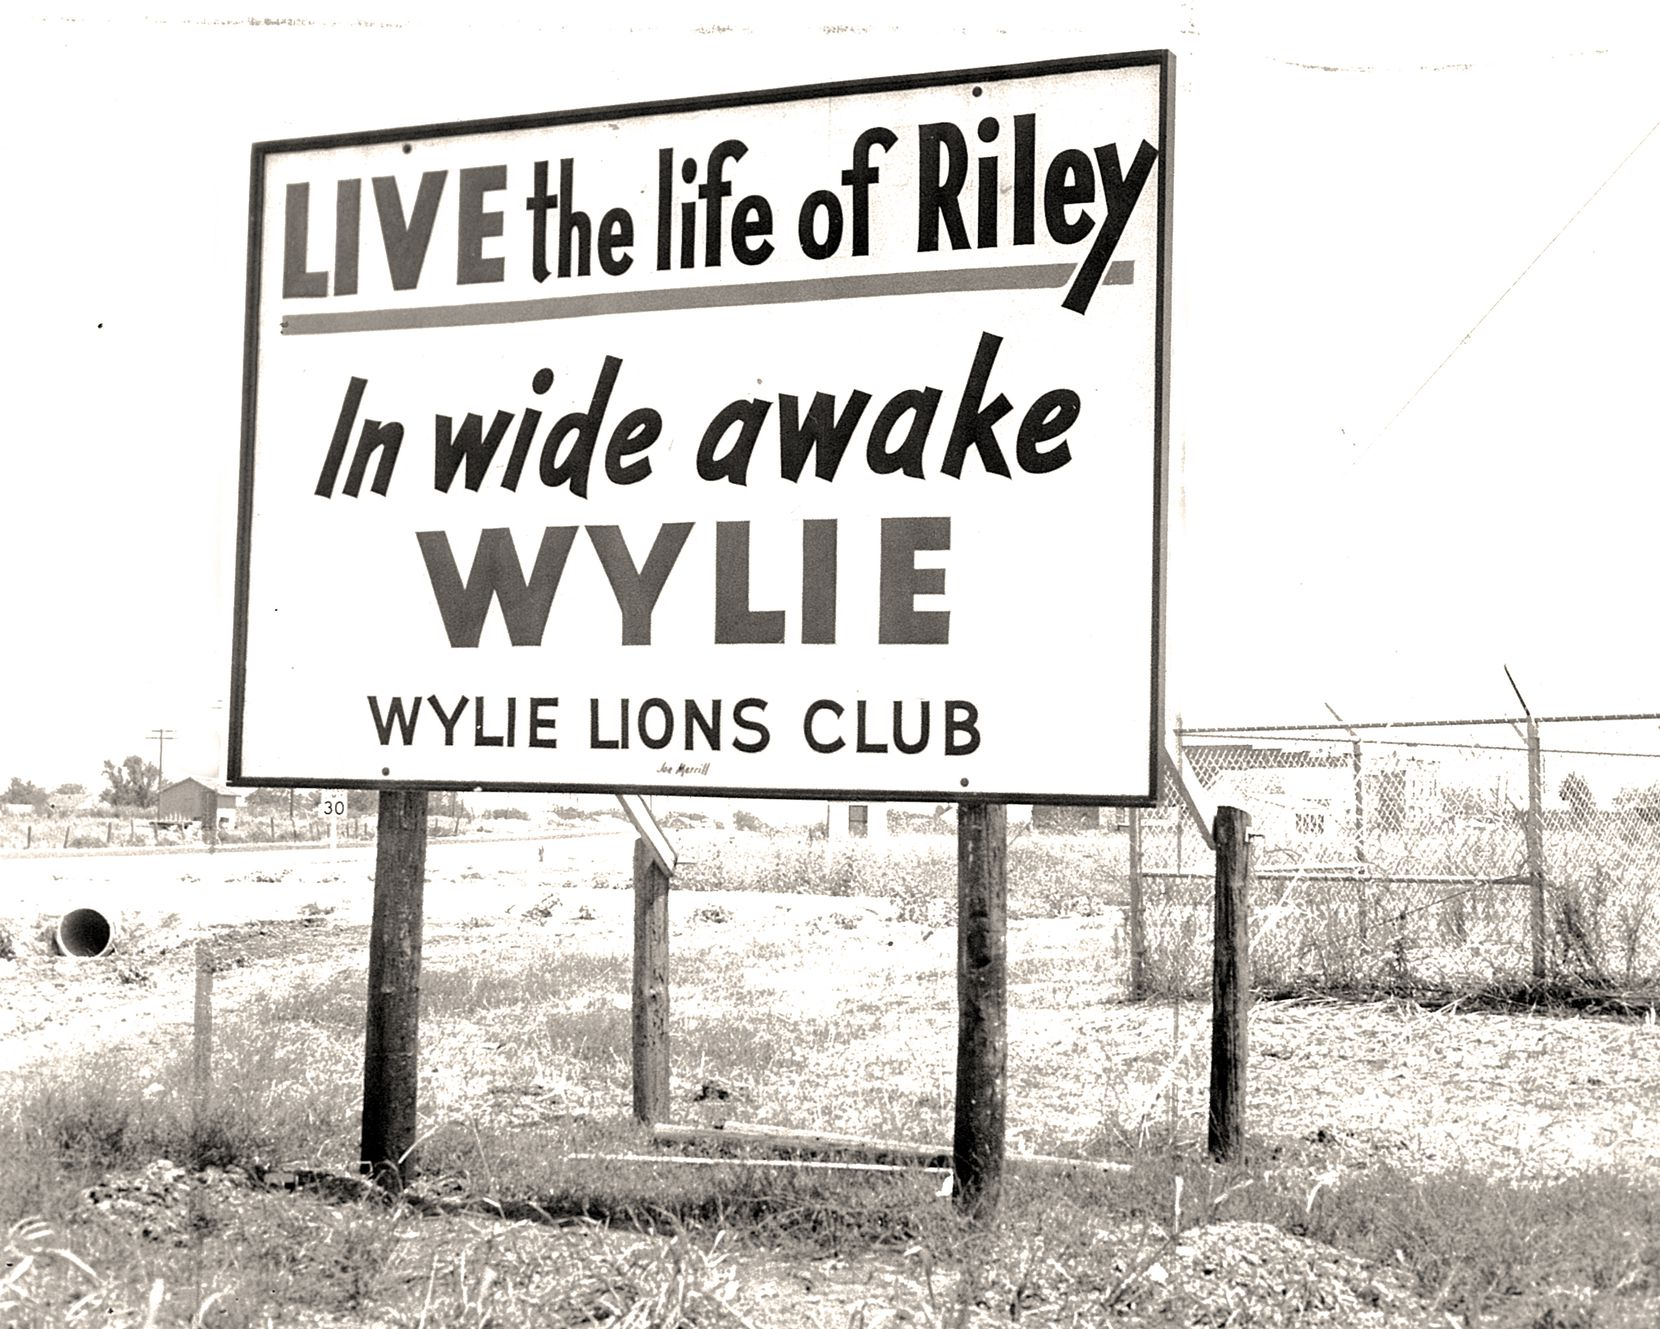 A sign created by the Wylie Lions Club was how the city got its slogan, said former Wylie Mayor Eric Hogue.